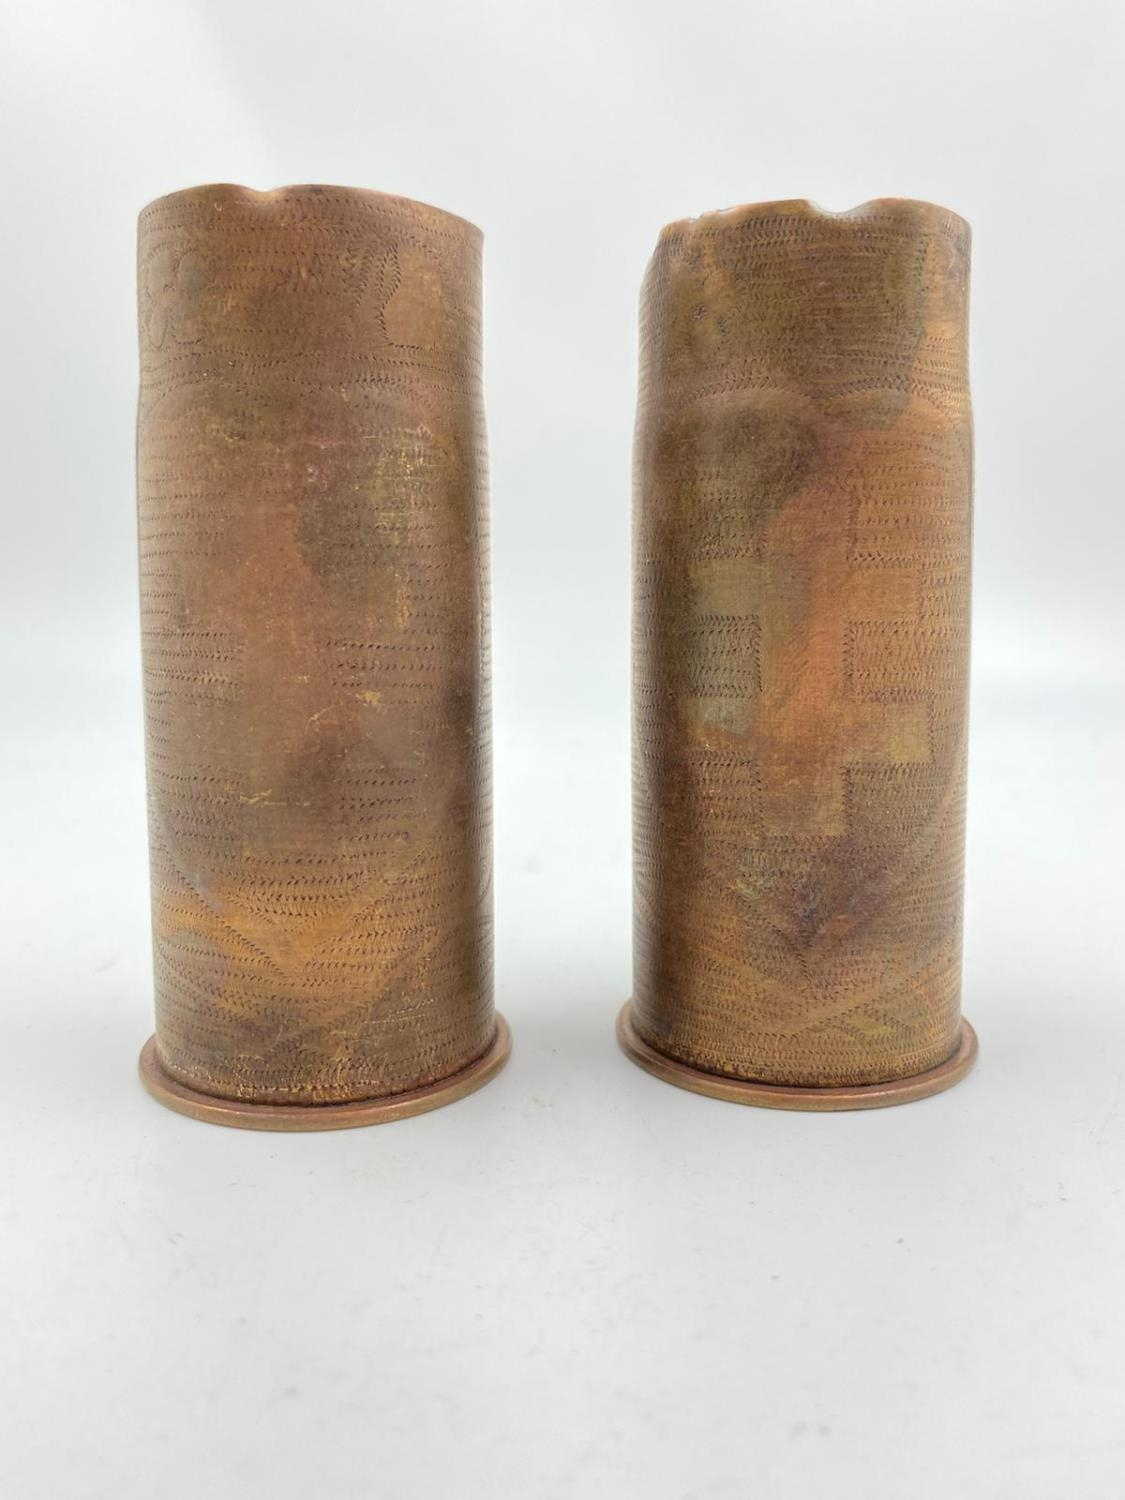 2 x INERT Trench Art 37mm Hotchkiss Cases. They could do with a good polish.